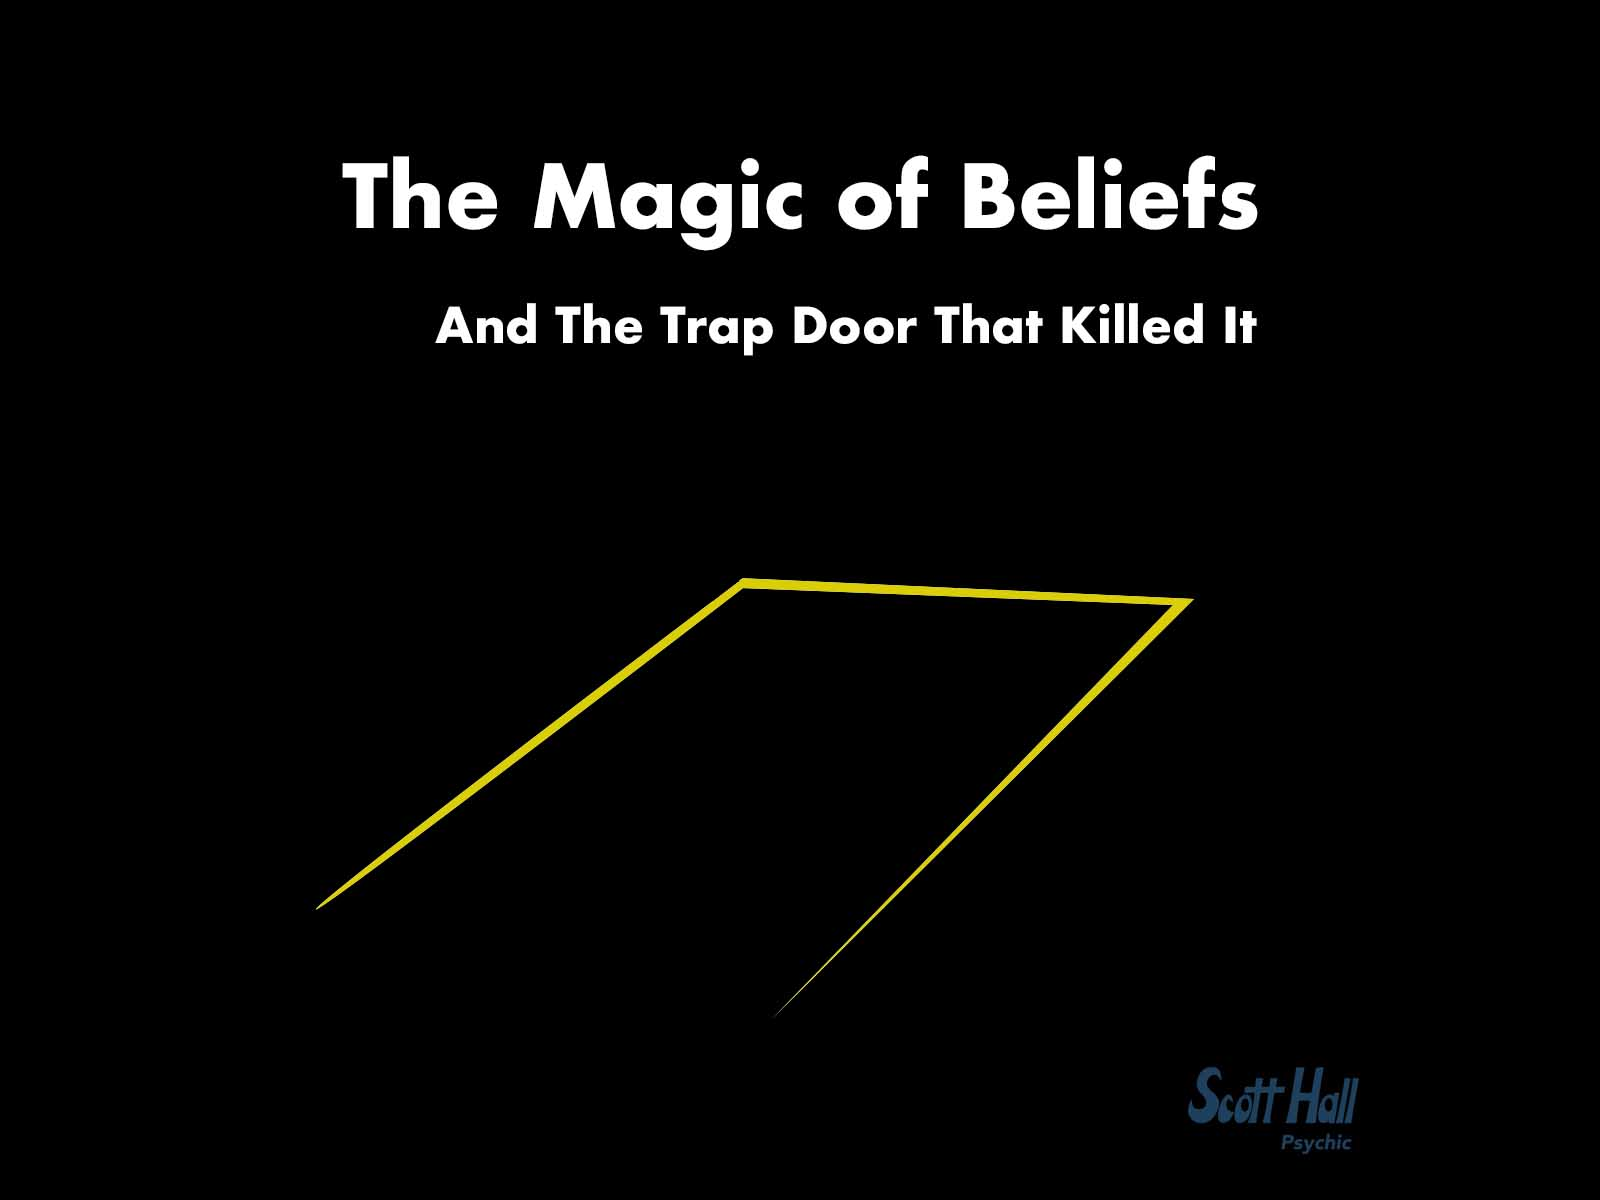 The Magic of Beliefs.jpg